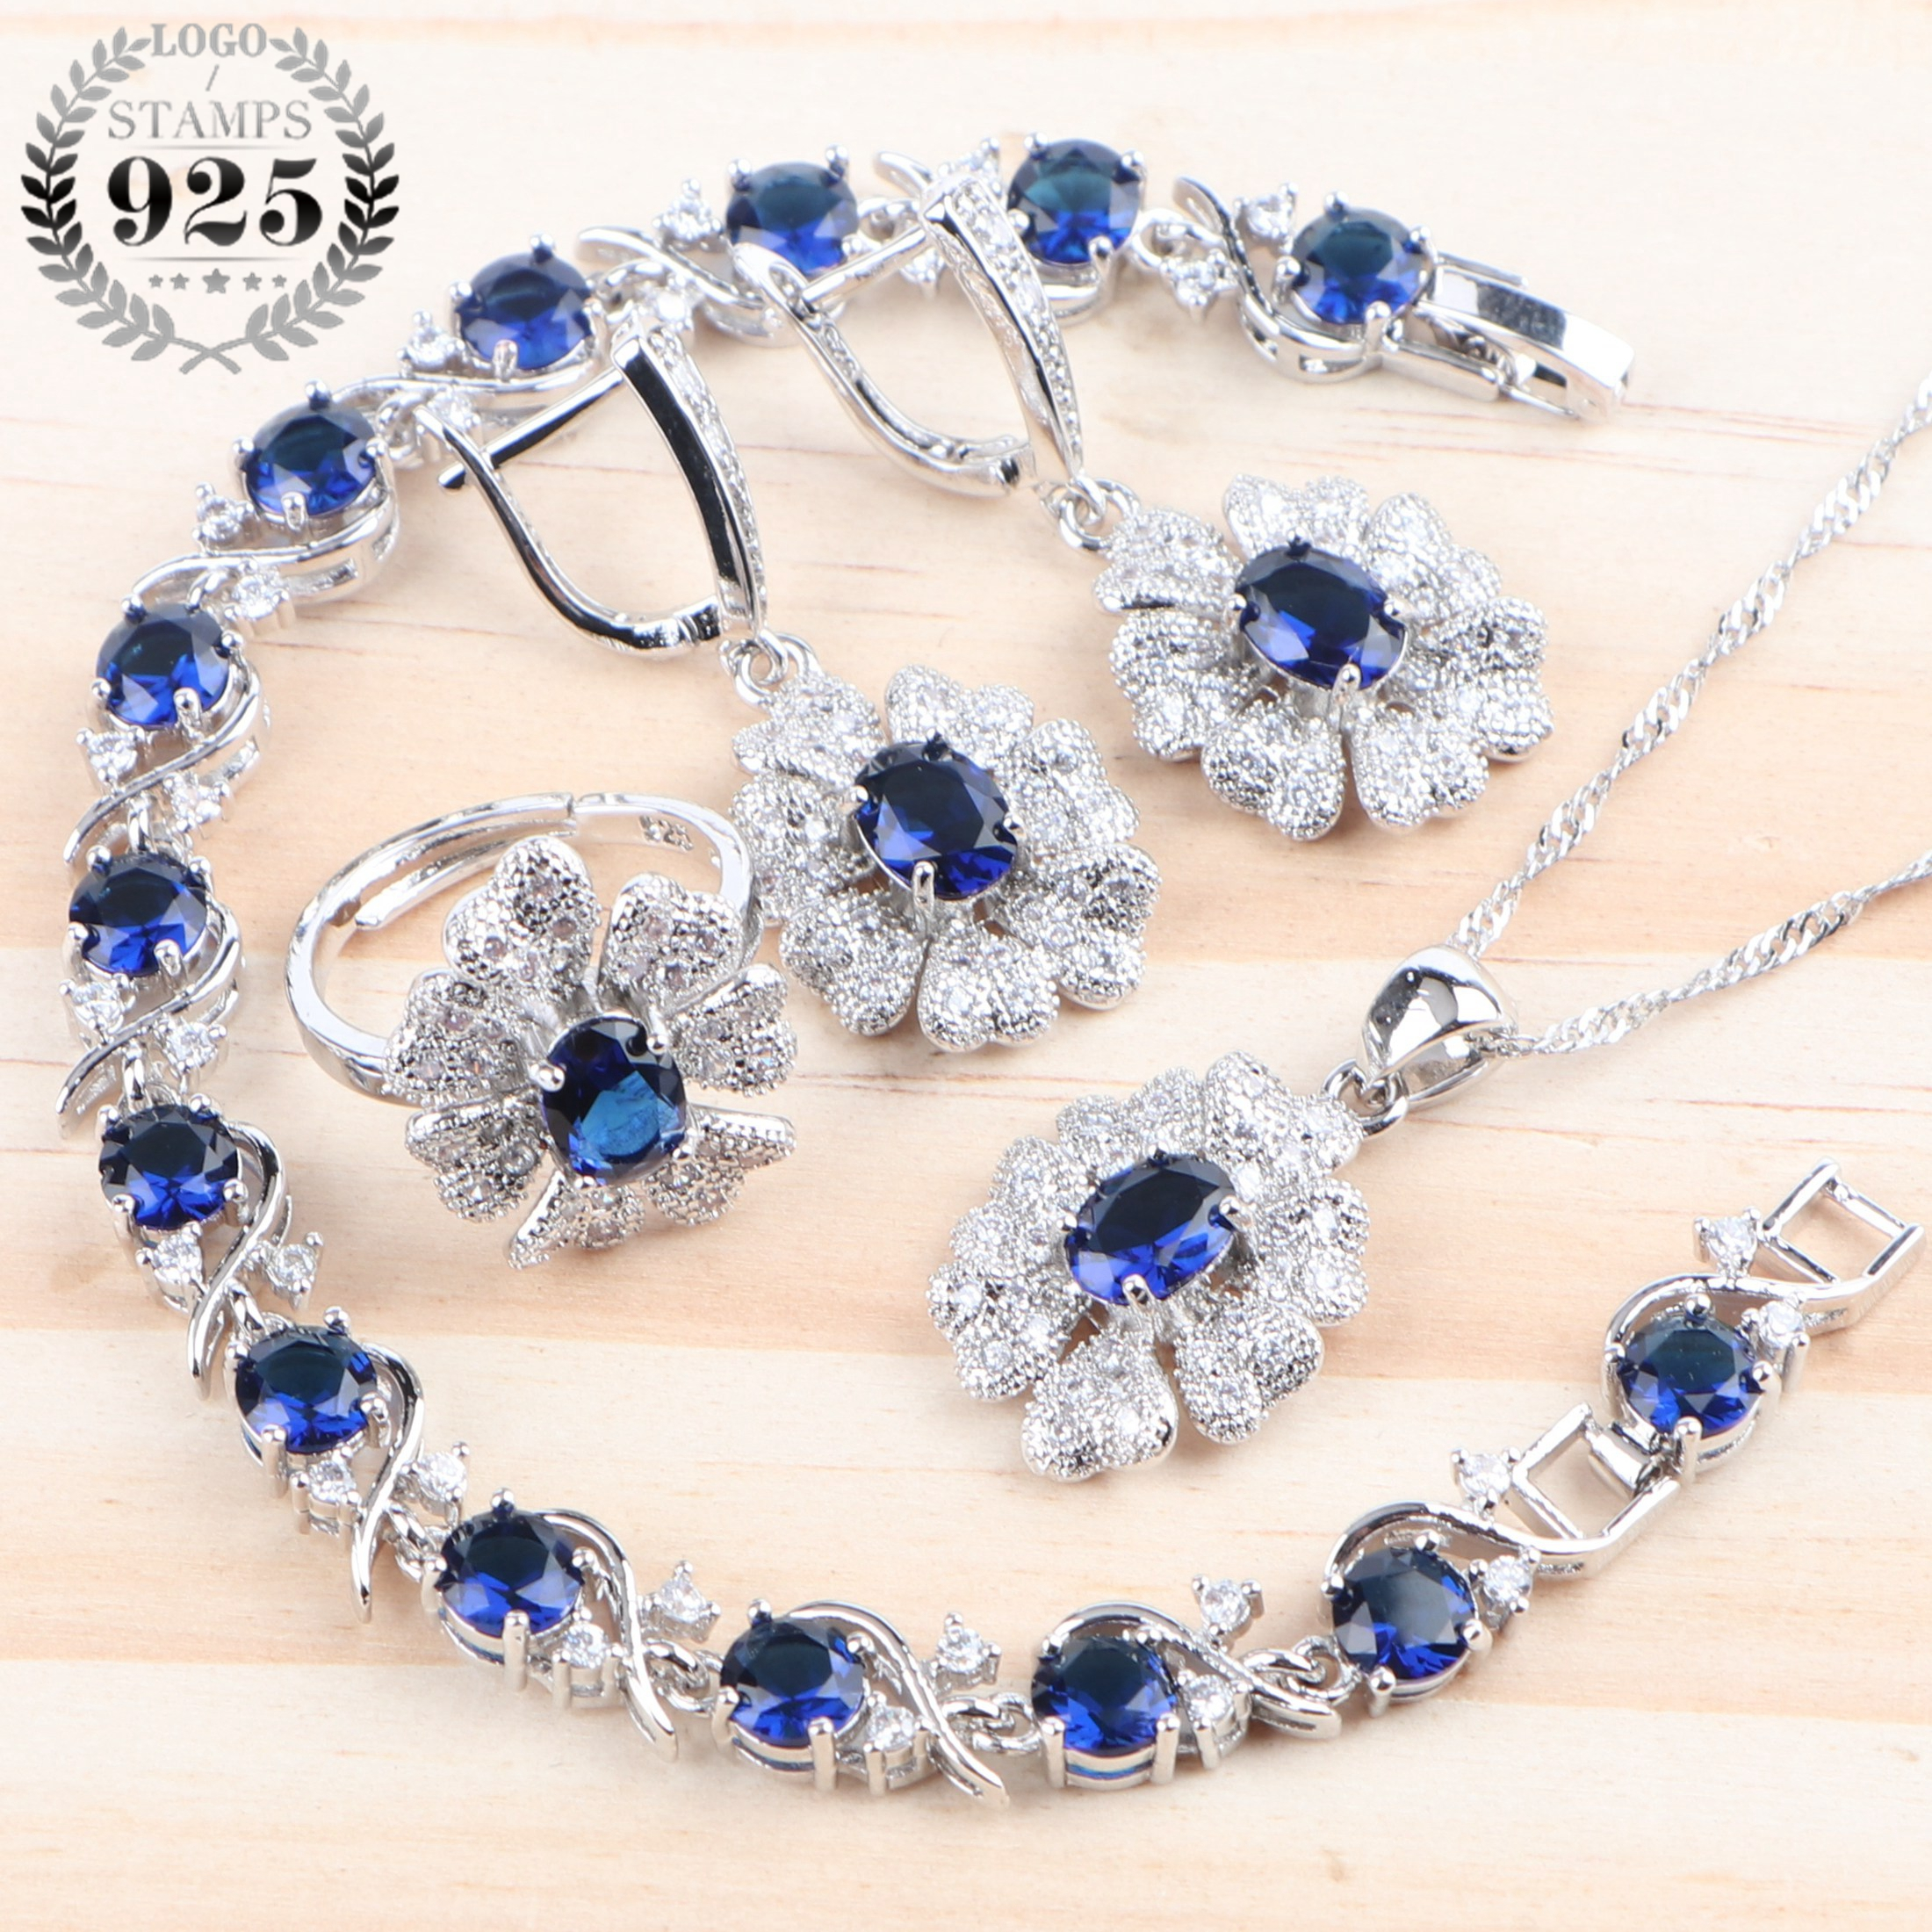 Wedding Silver 925 Bridal Jewelry Sets Women Costume Blue Cubic Zirconia Jewelry Ring Bracelet Earrings Pendant Necklace Sets